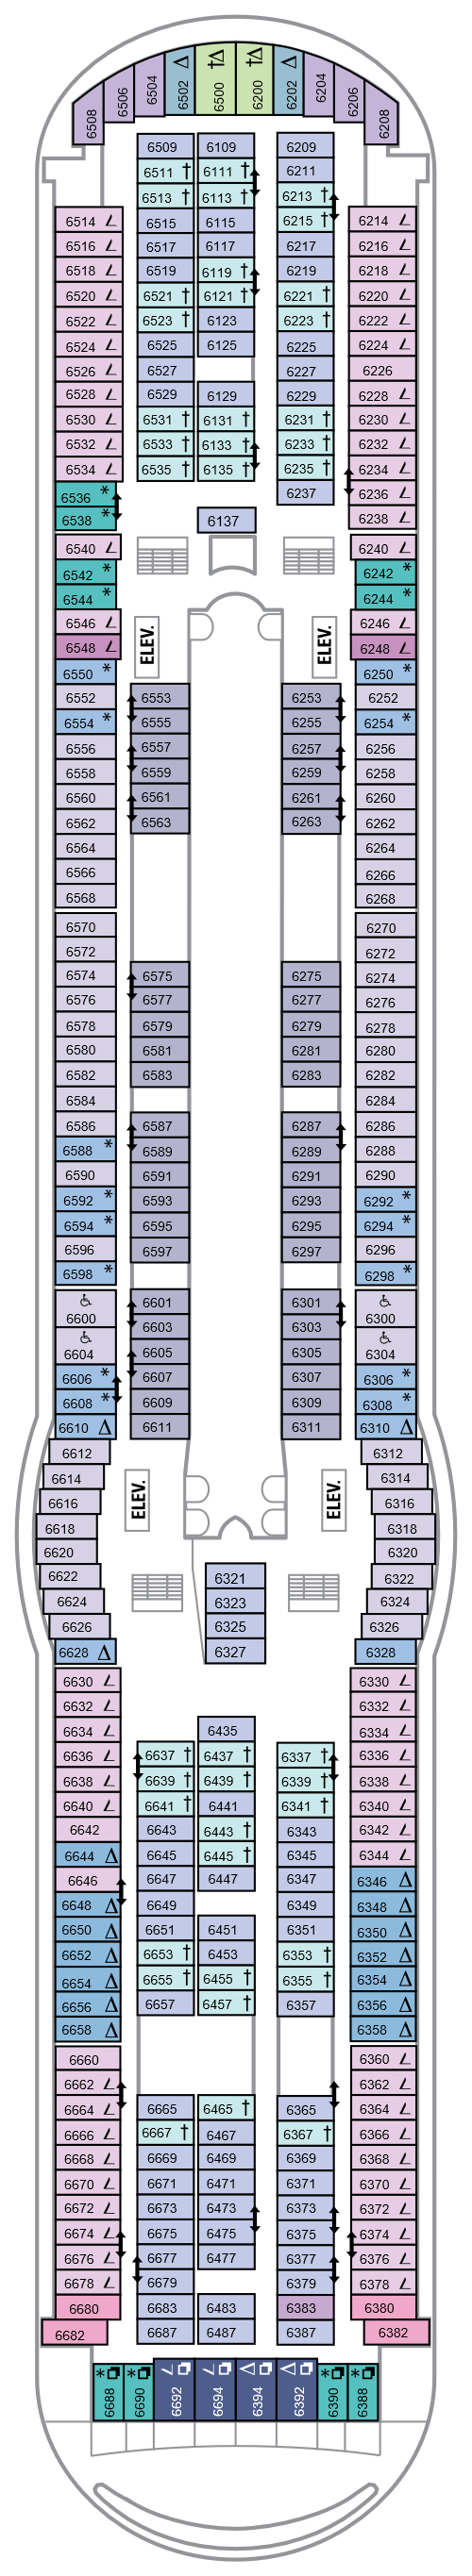 Mariner Of The Seas Deck 6 layout